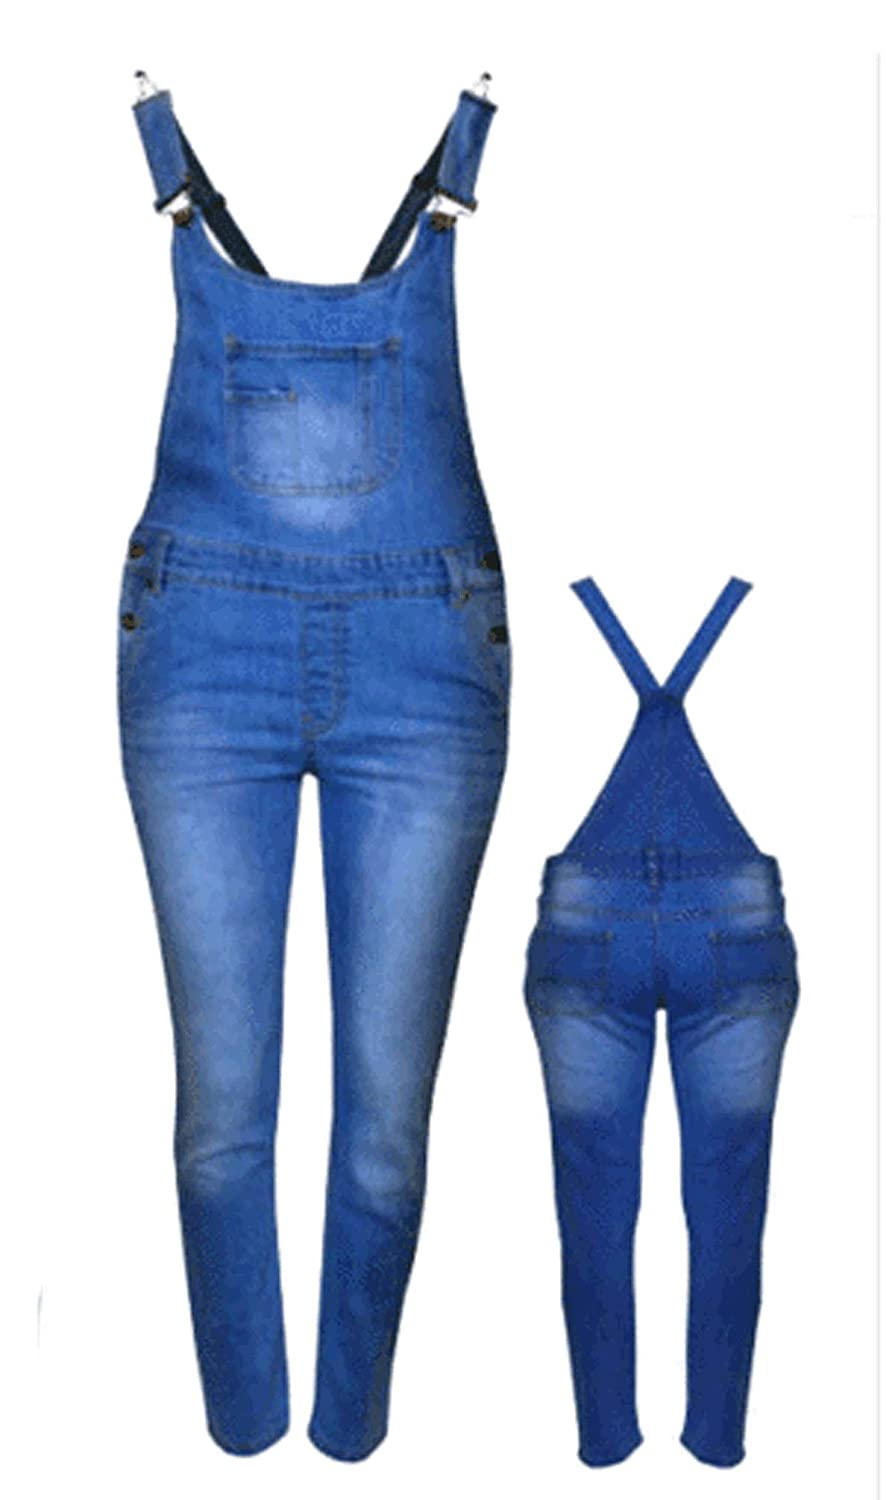 CELEBMODELOOK K81 Girls Dungaree Full Length Jumpsuit Pinafore Overall 7-14 Denim Kids Jeans